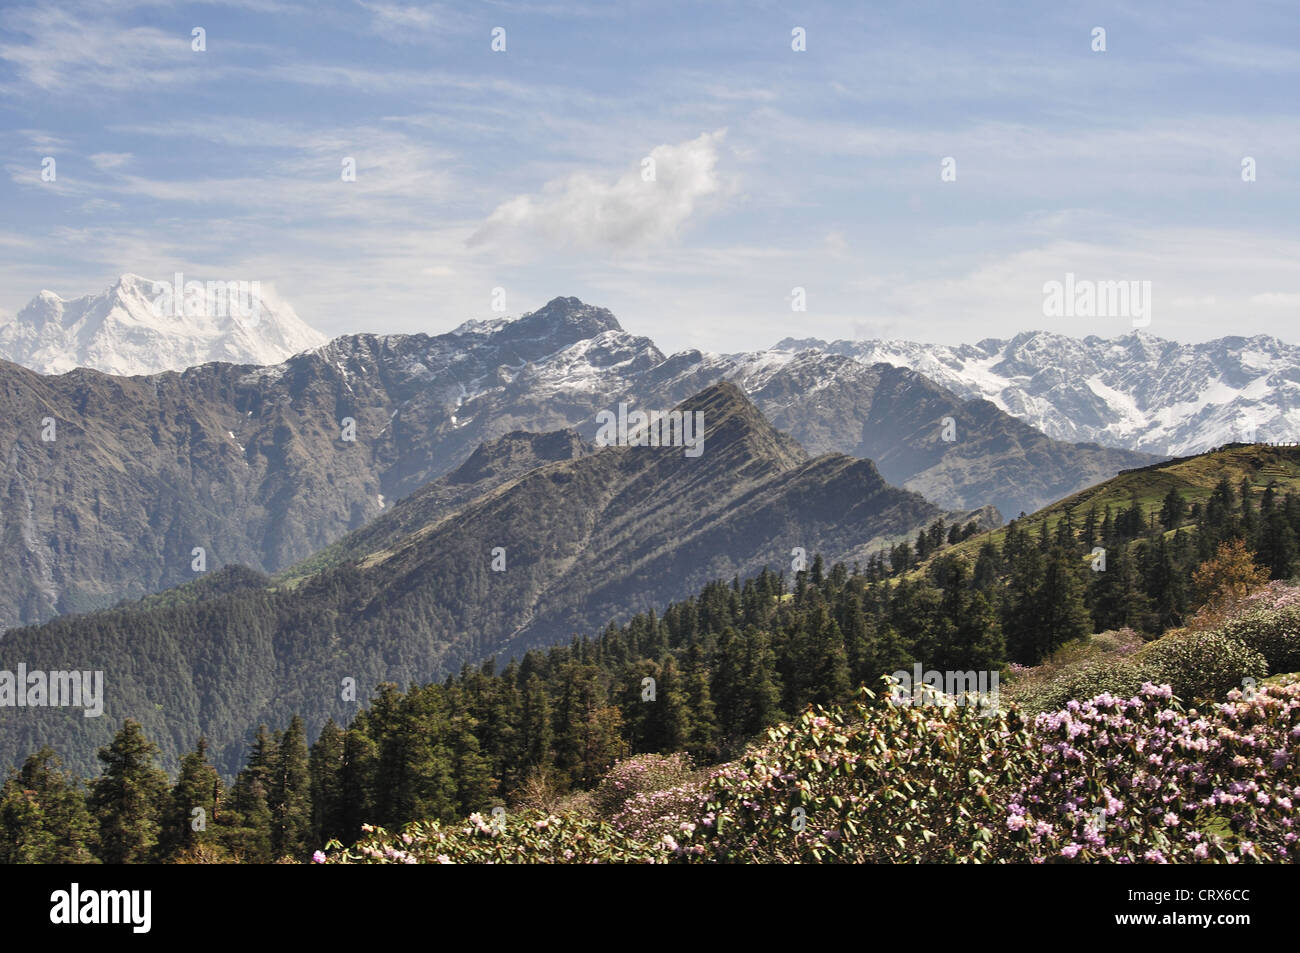 Landscape view of Himalayan ranges from Nepal - Stock Image